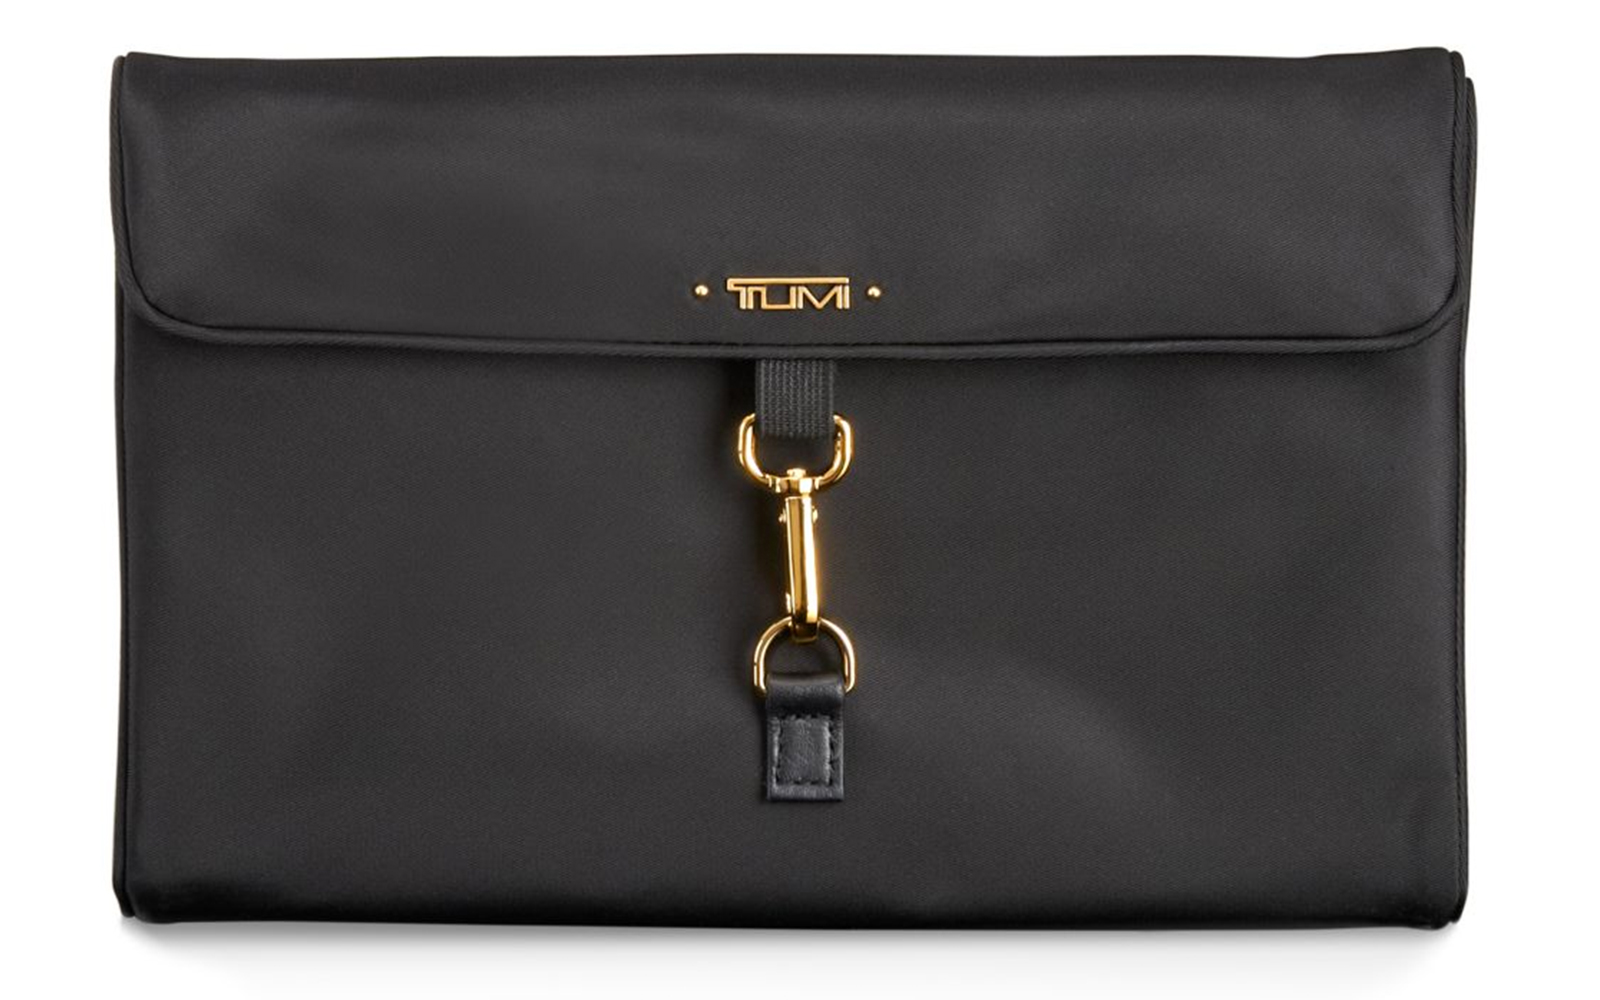 TUMI Jewelry Bag